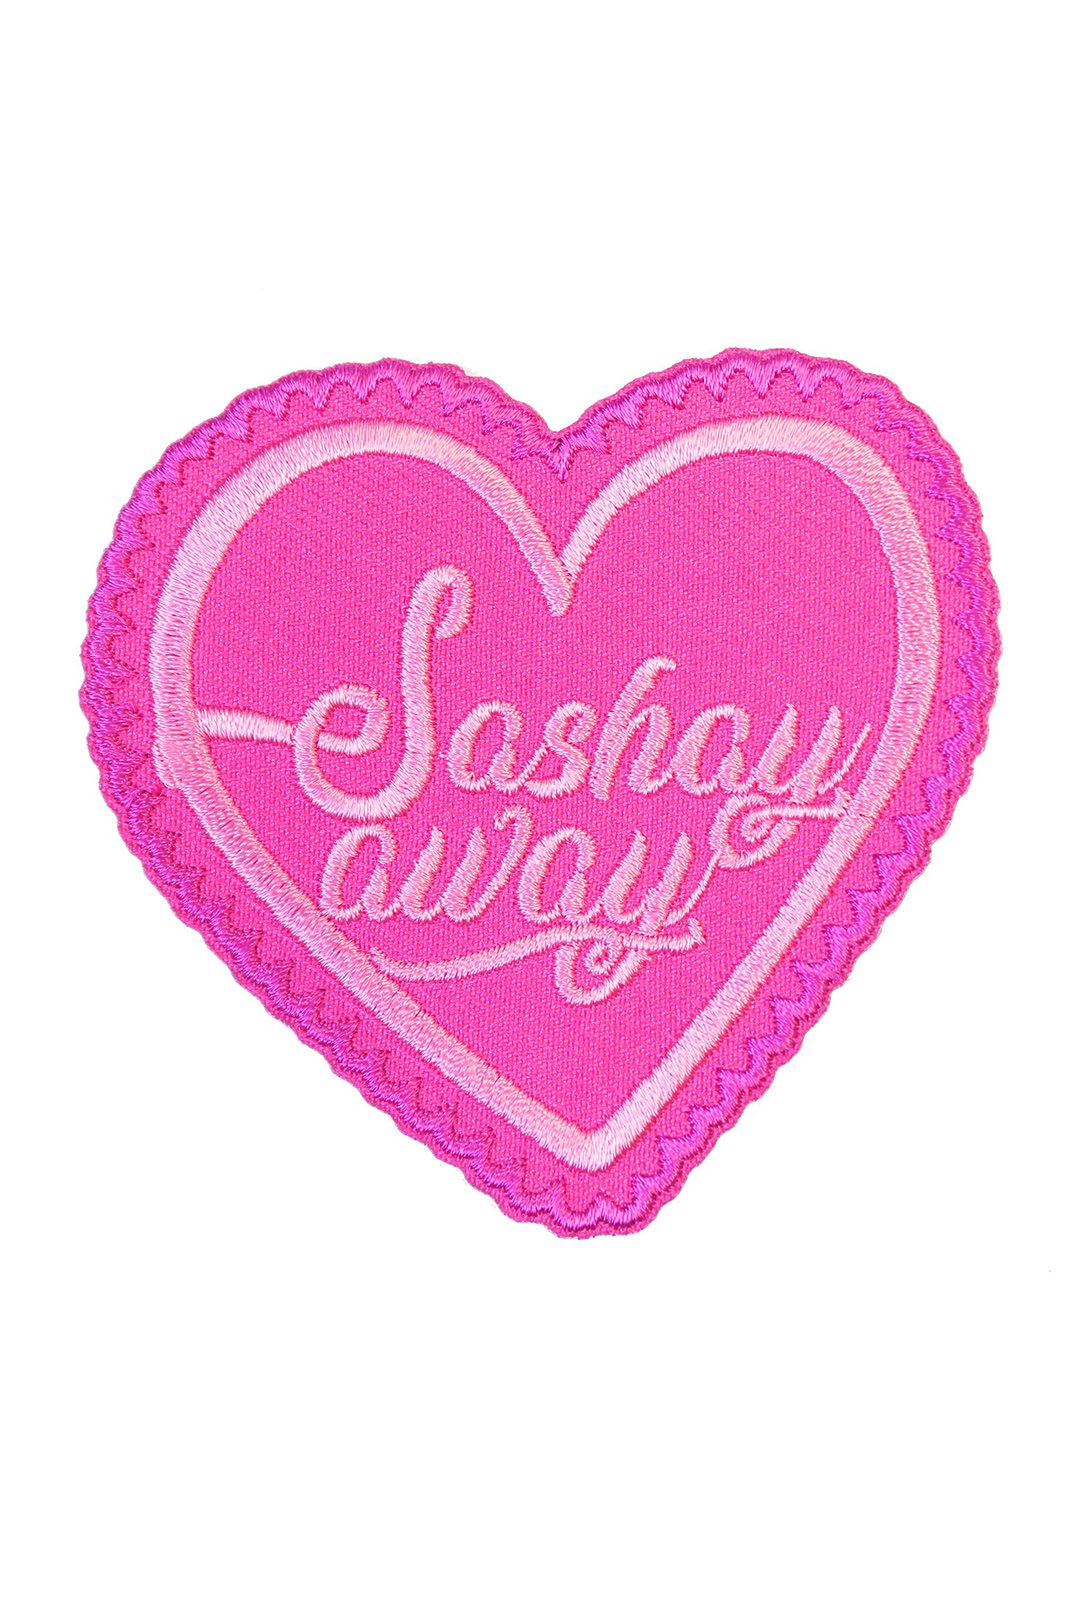 Sashay Away Patch